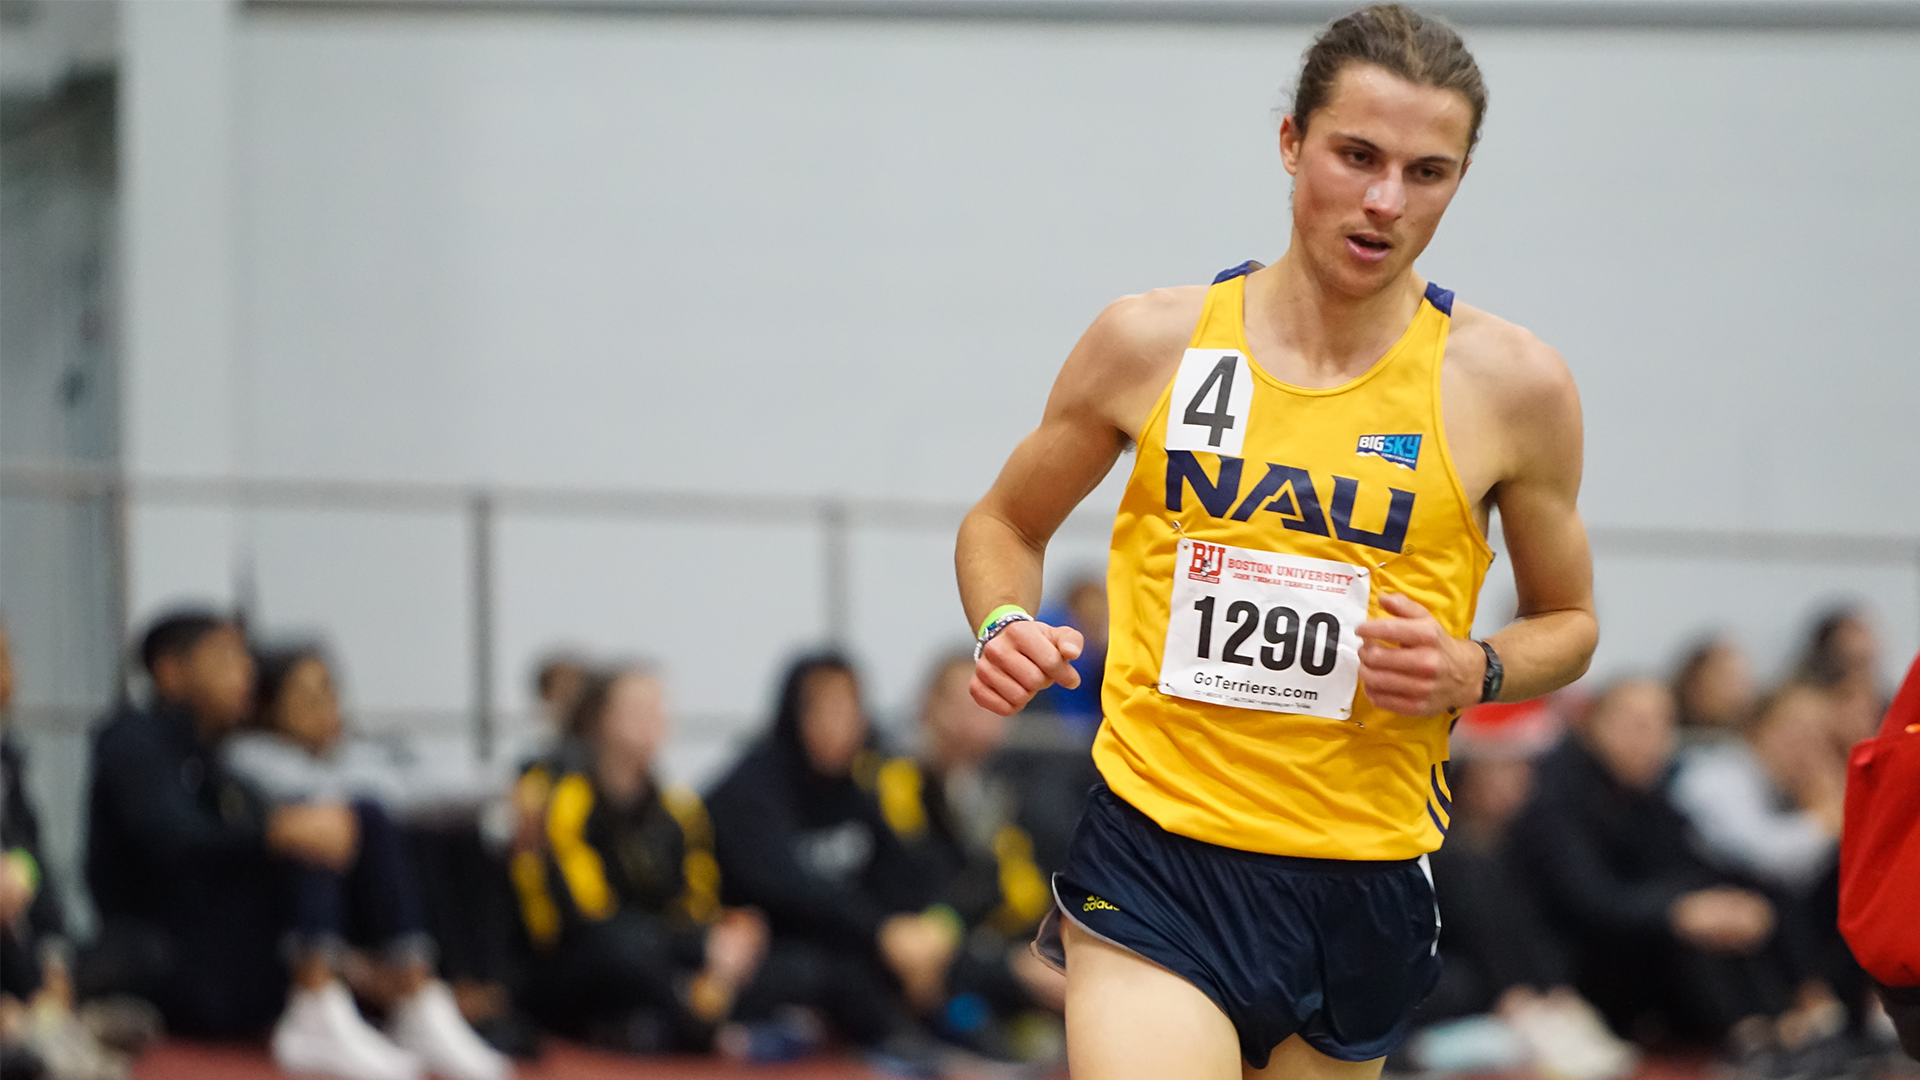 NAU Men's Indoor Track & Field Ranked No. 13 in Latest USTFCCCA National Coaches' Poll